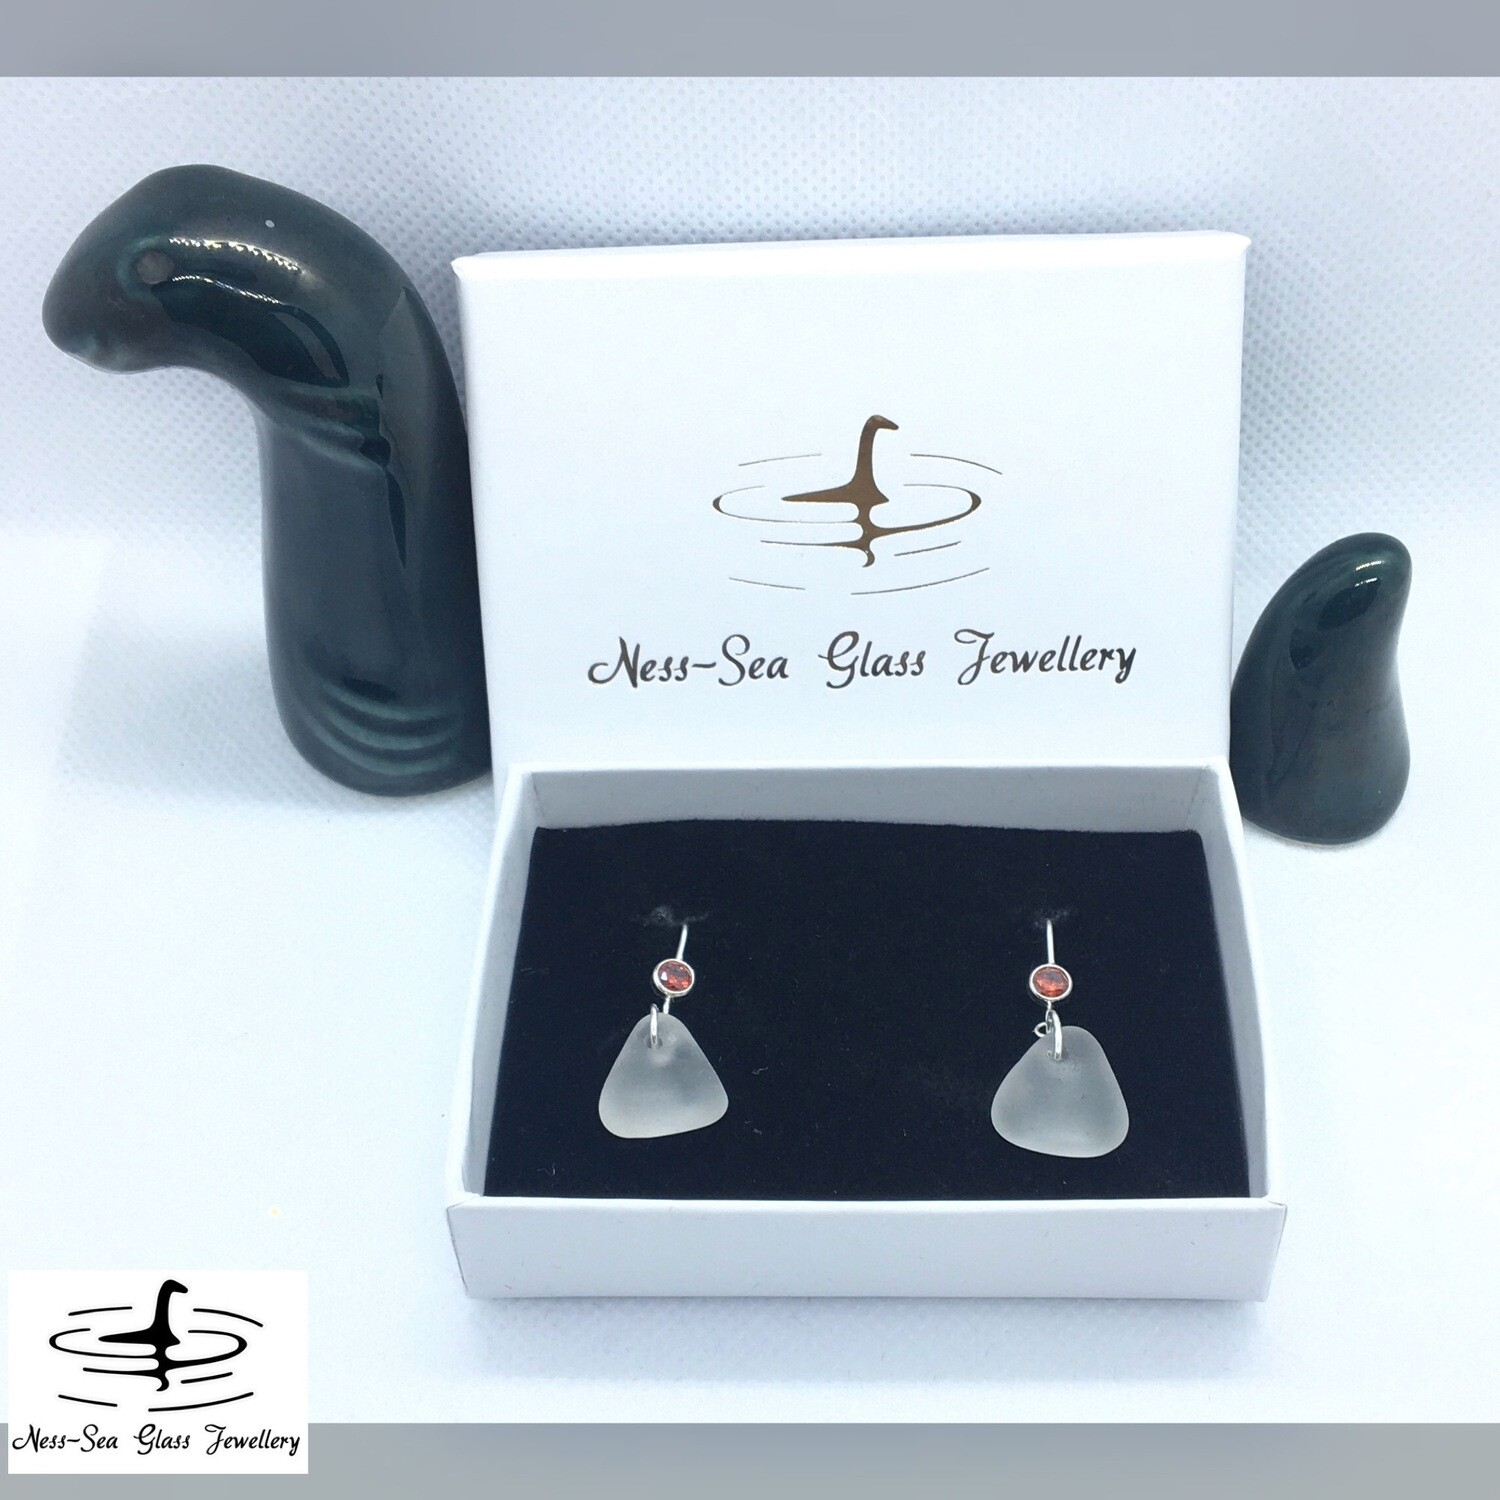 Clear Loch Ness Sea Glass Sterling Silver Hook Earrings with Red Cubic Zirconia Gemstone Detail.